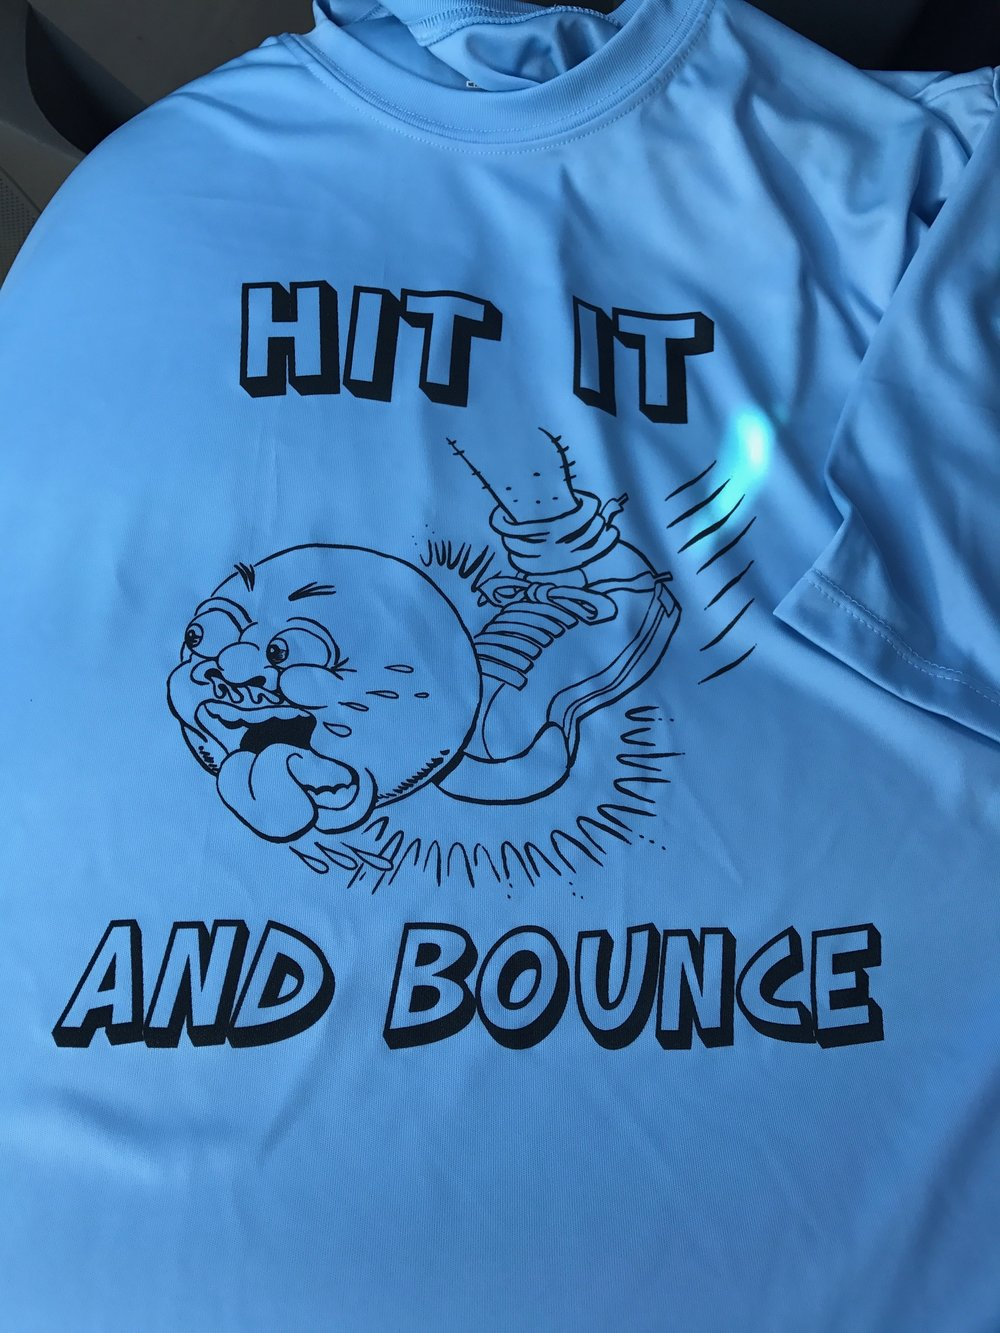 Hit it and Bounce.JPG